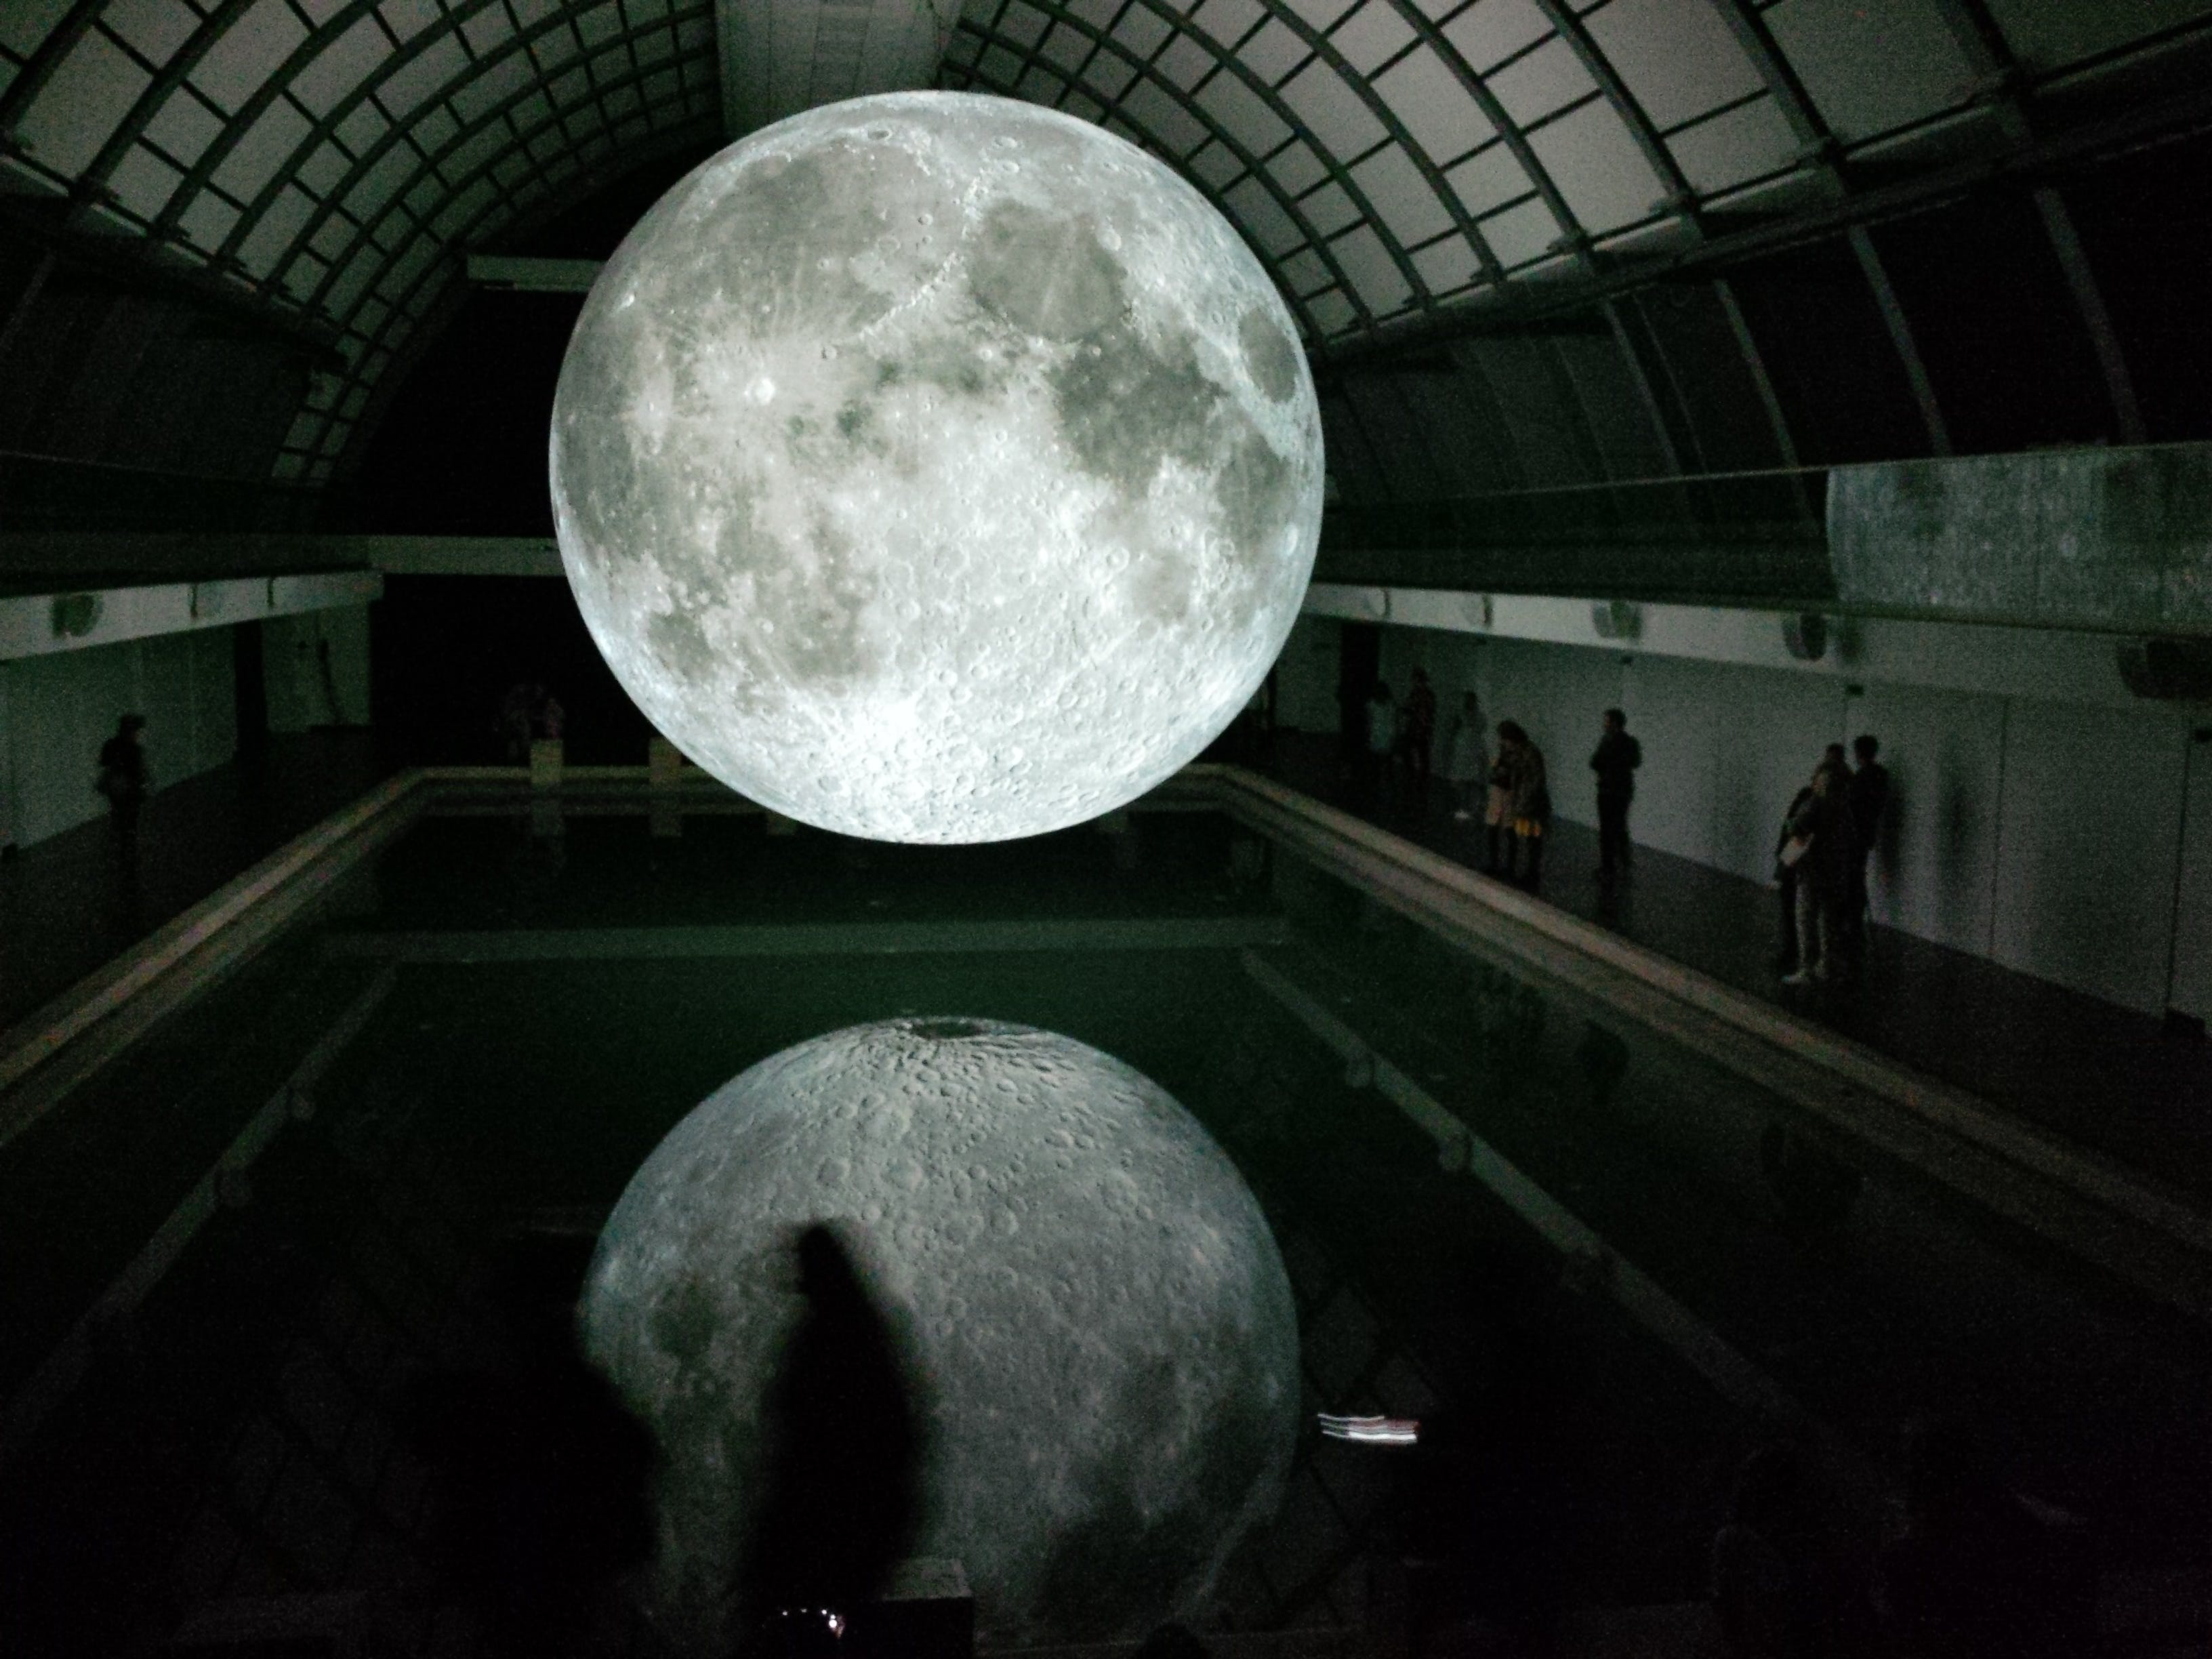 Photo of Moon Hologram Floating on Water Near People Inside Room